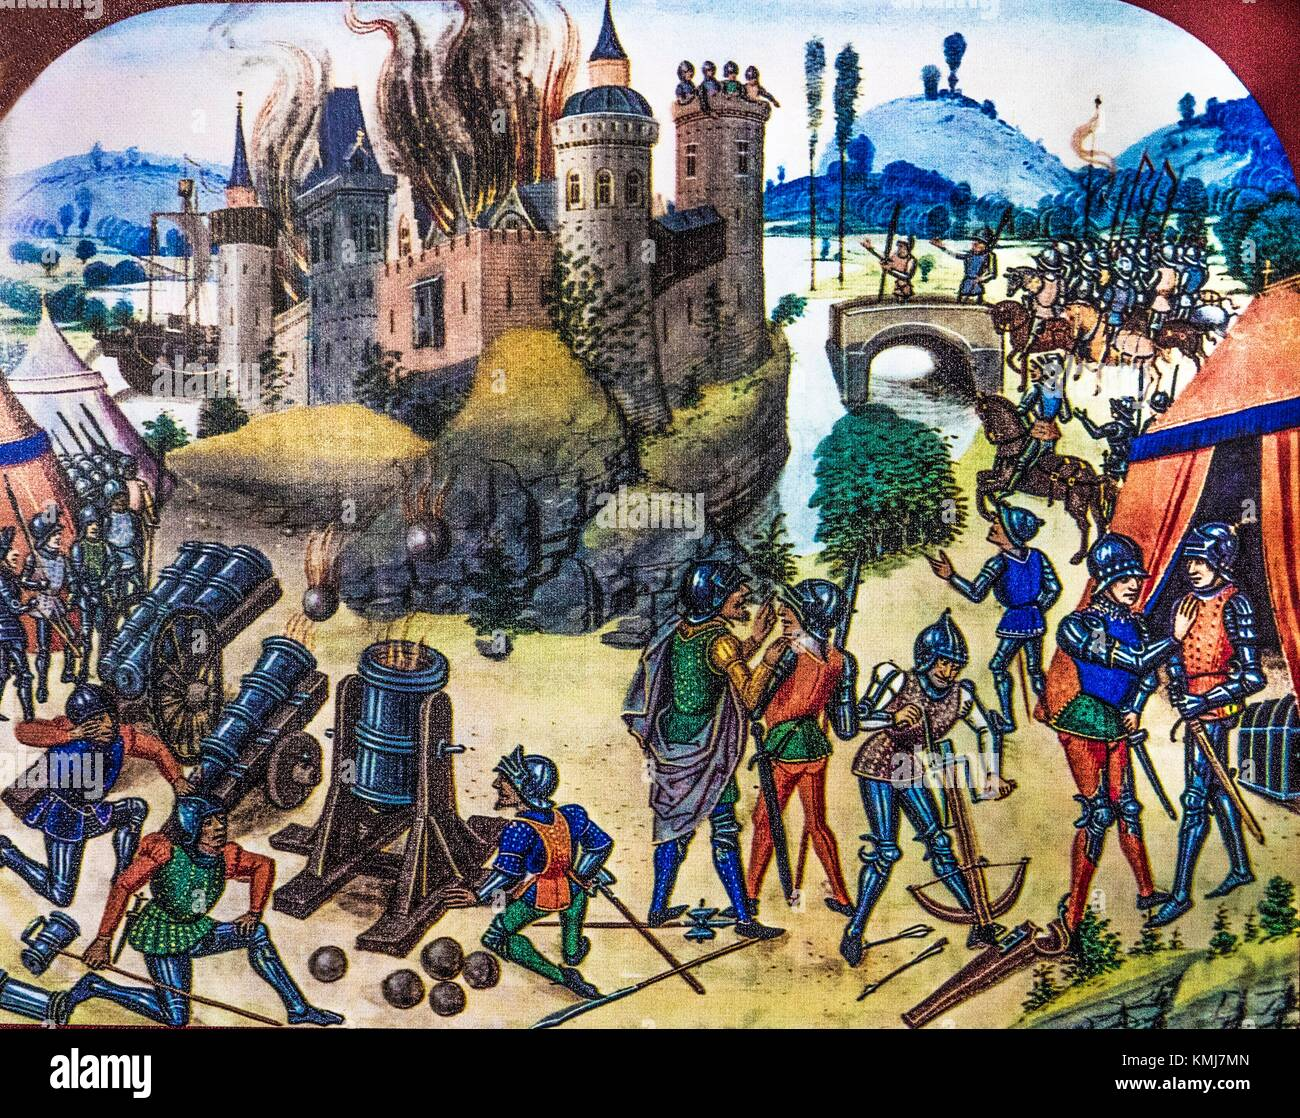 Belgium, Dinant- Miniature, XVc. reprenseting the attack of Charles Le Téméraire in 1466. - Stock Image